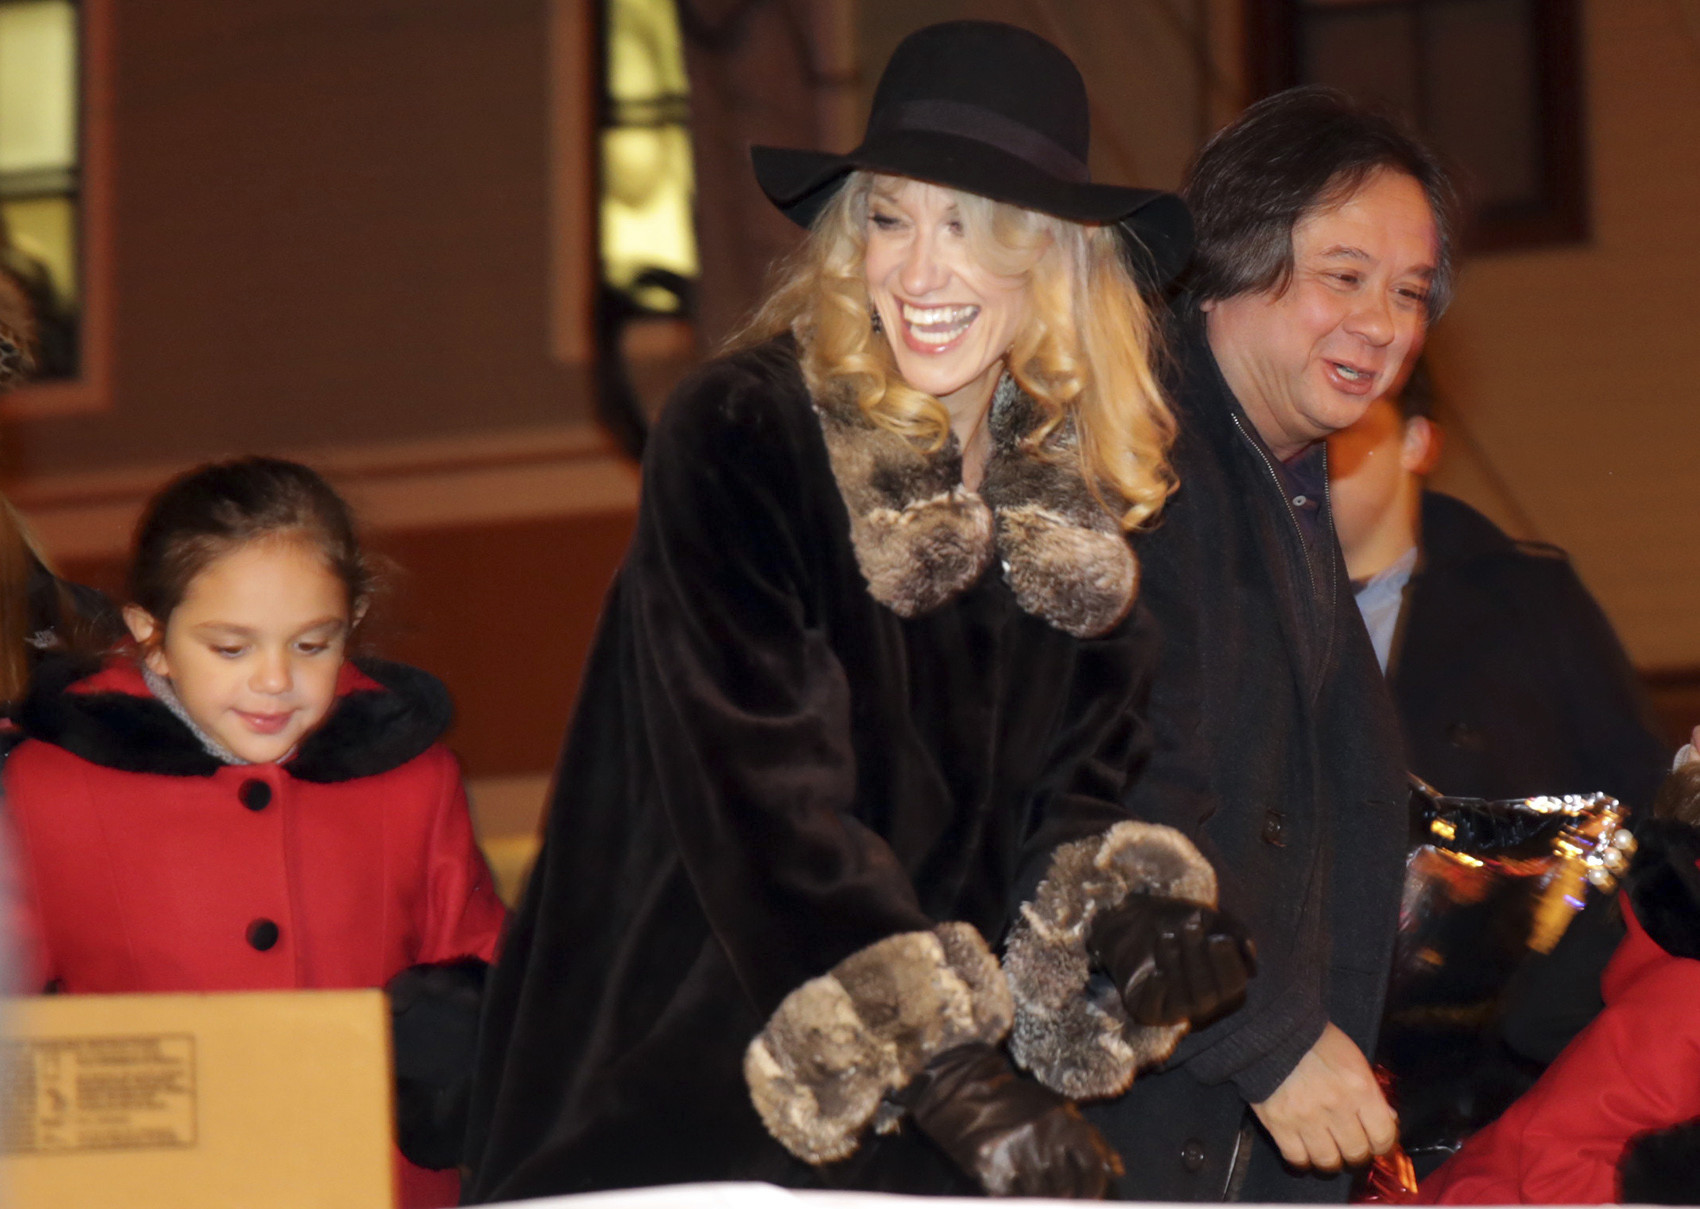 Conway Christmas Parade 2019 Trump campaign manager Kellyanne Conway leads New Jersey Christmas